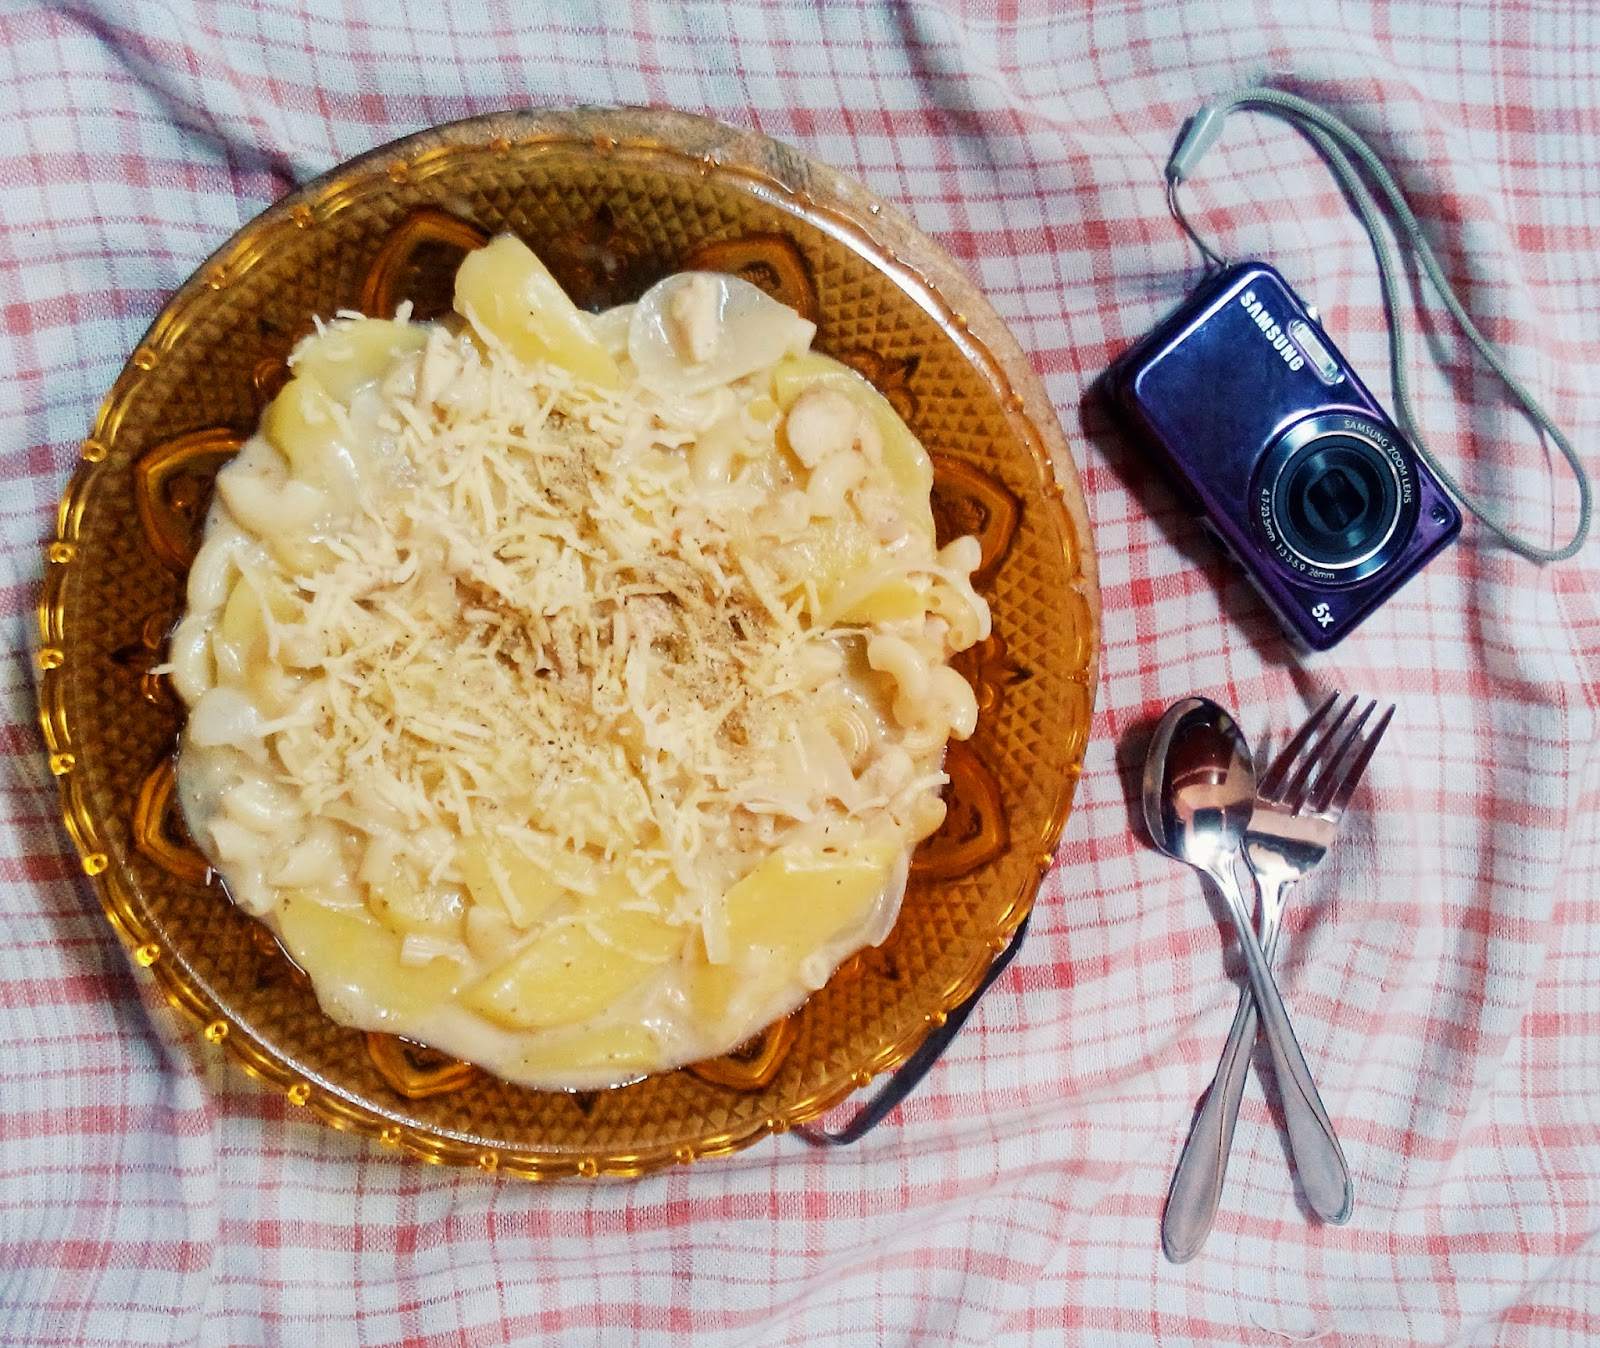 Macaroni_Gratin_Pasta_Foodies_food_photography_pasta_fettucine